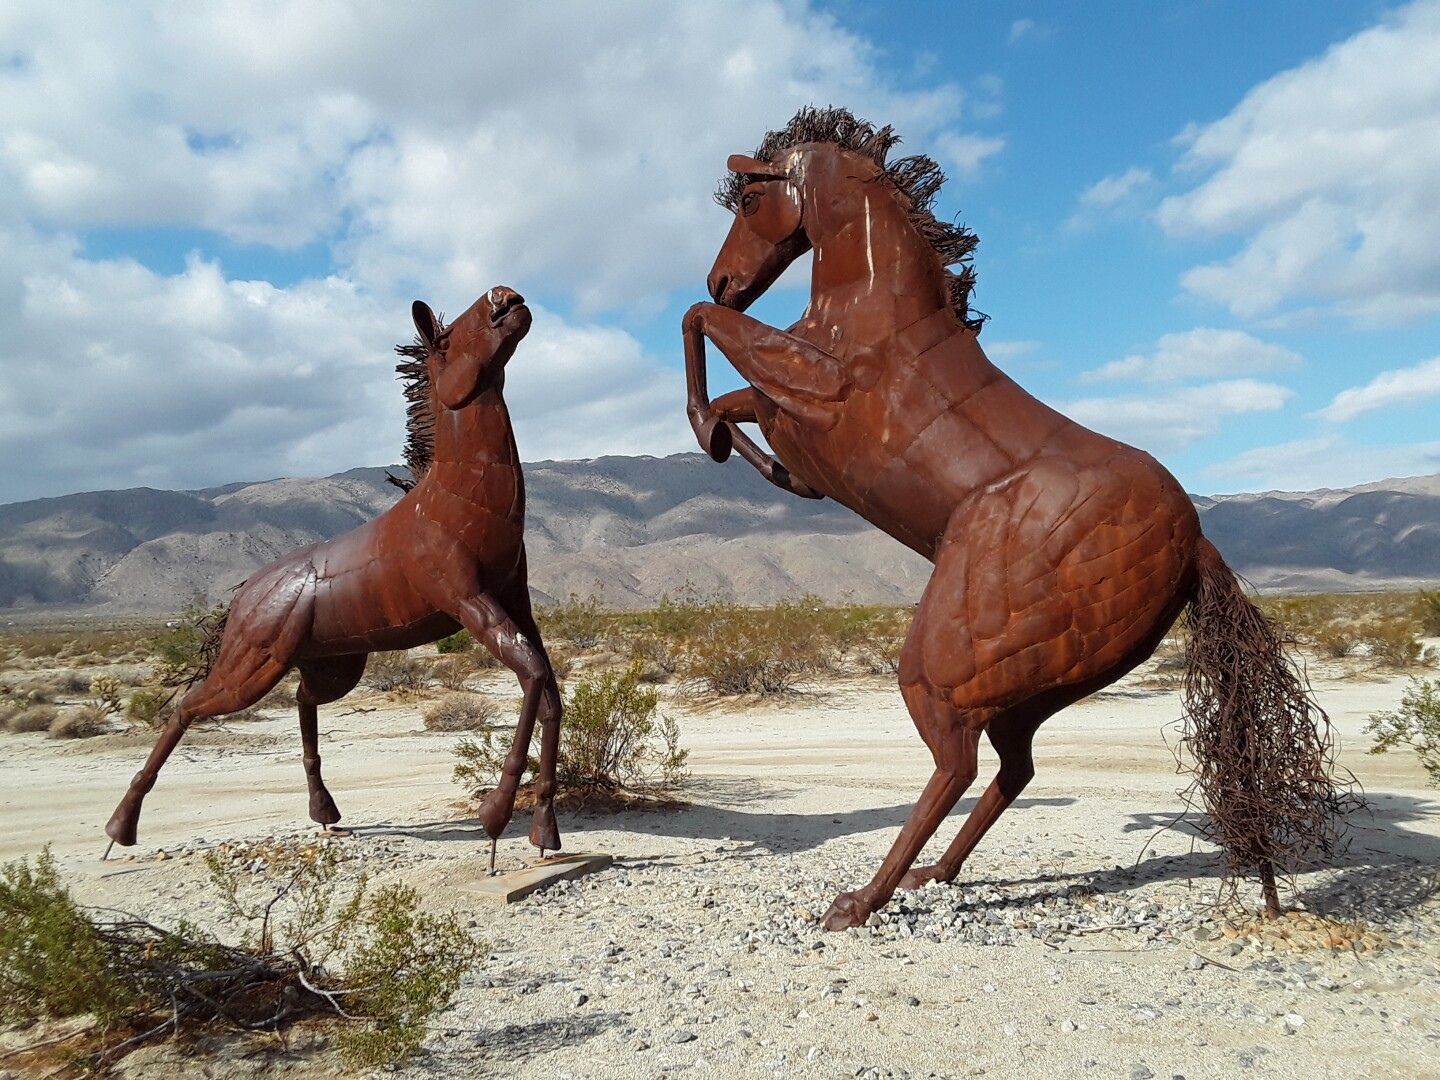 Two rust-colored metal horse sculptures are posed in a stand-off in the middle of a desert landscape.